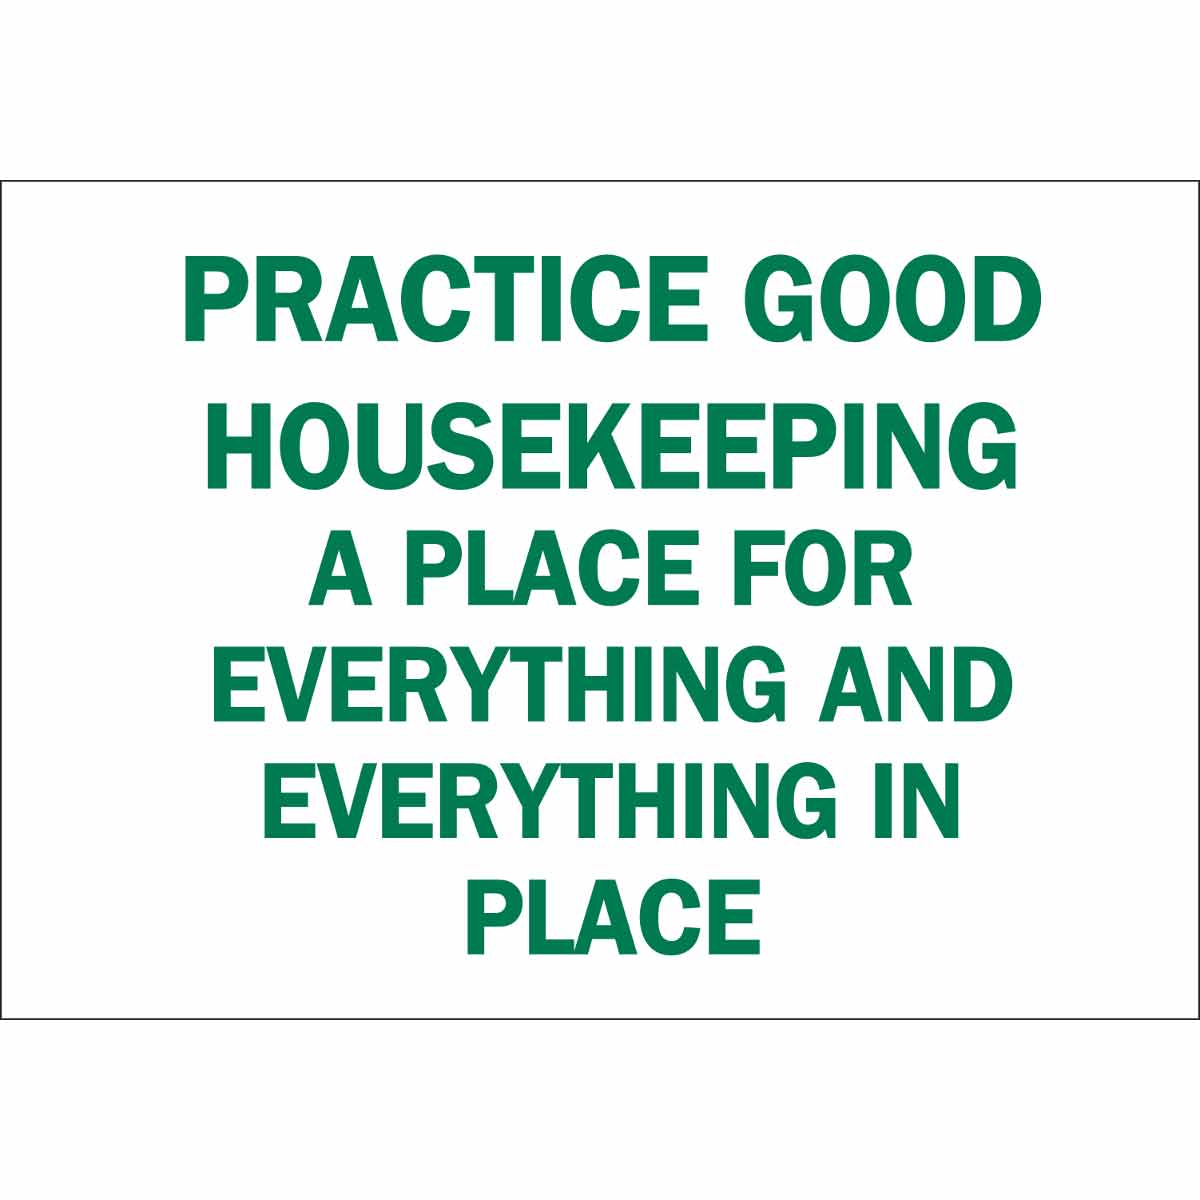 Practice Good Housekeeping A Place For